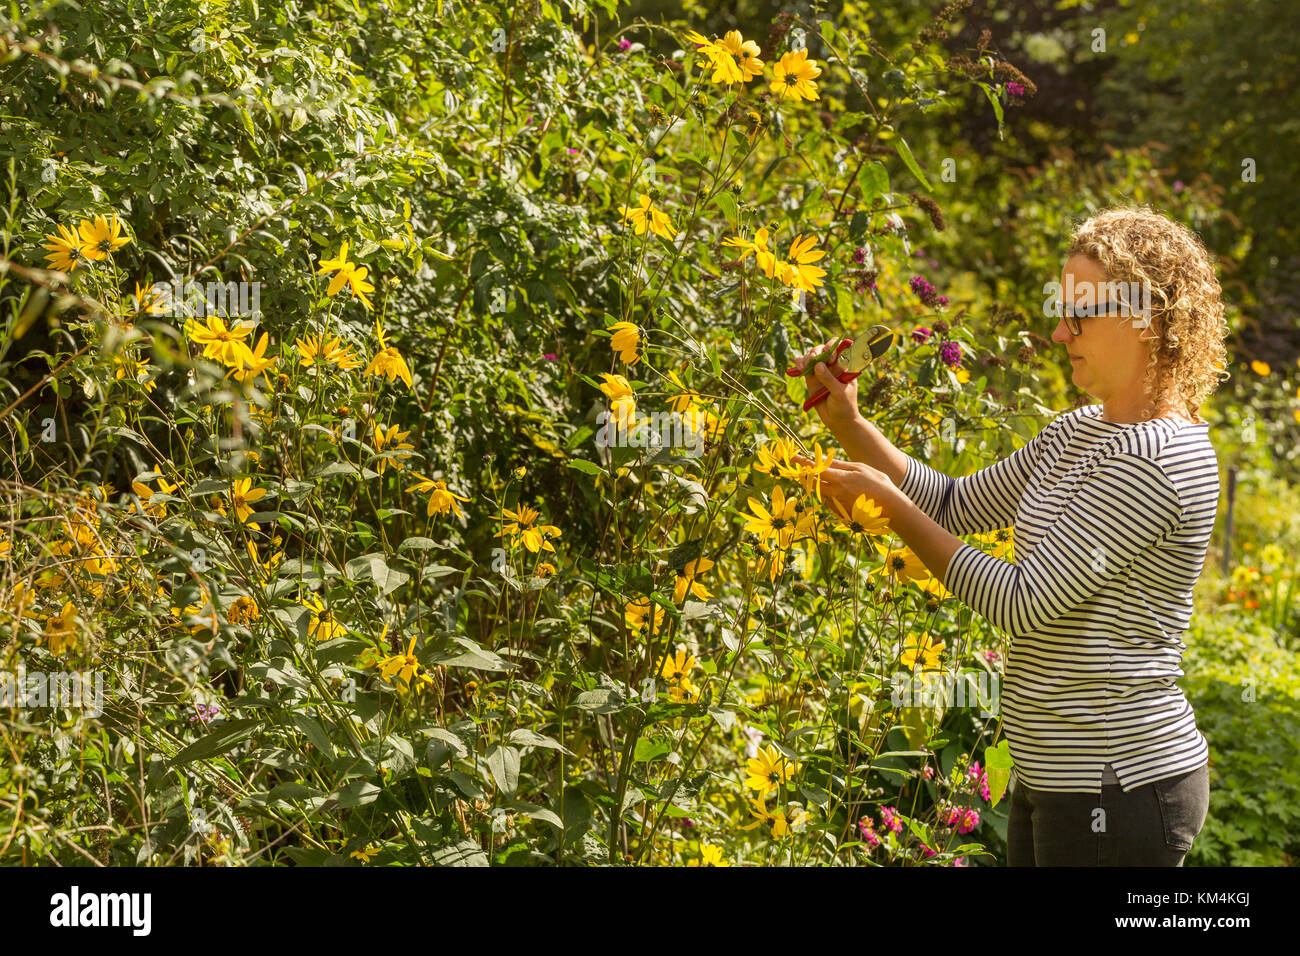 Side view of woman standing in a garden in summer, cutting yellow flowers. - Stock Image